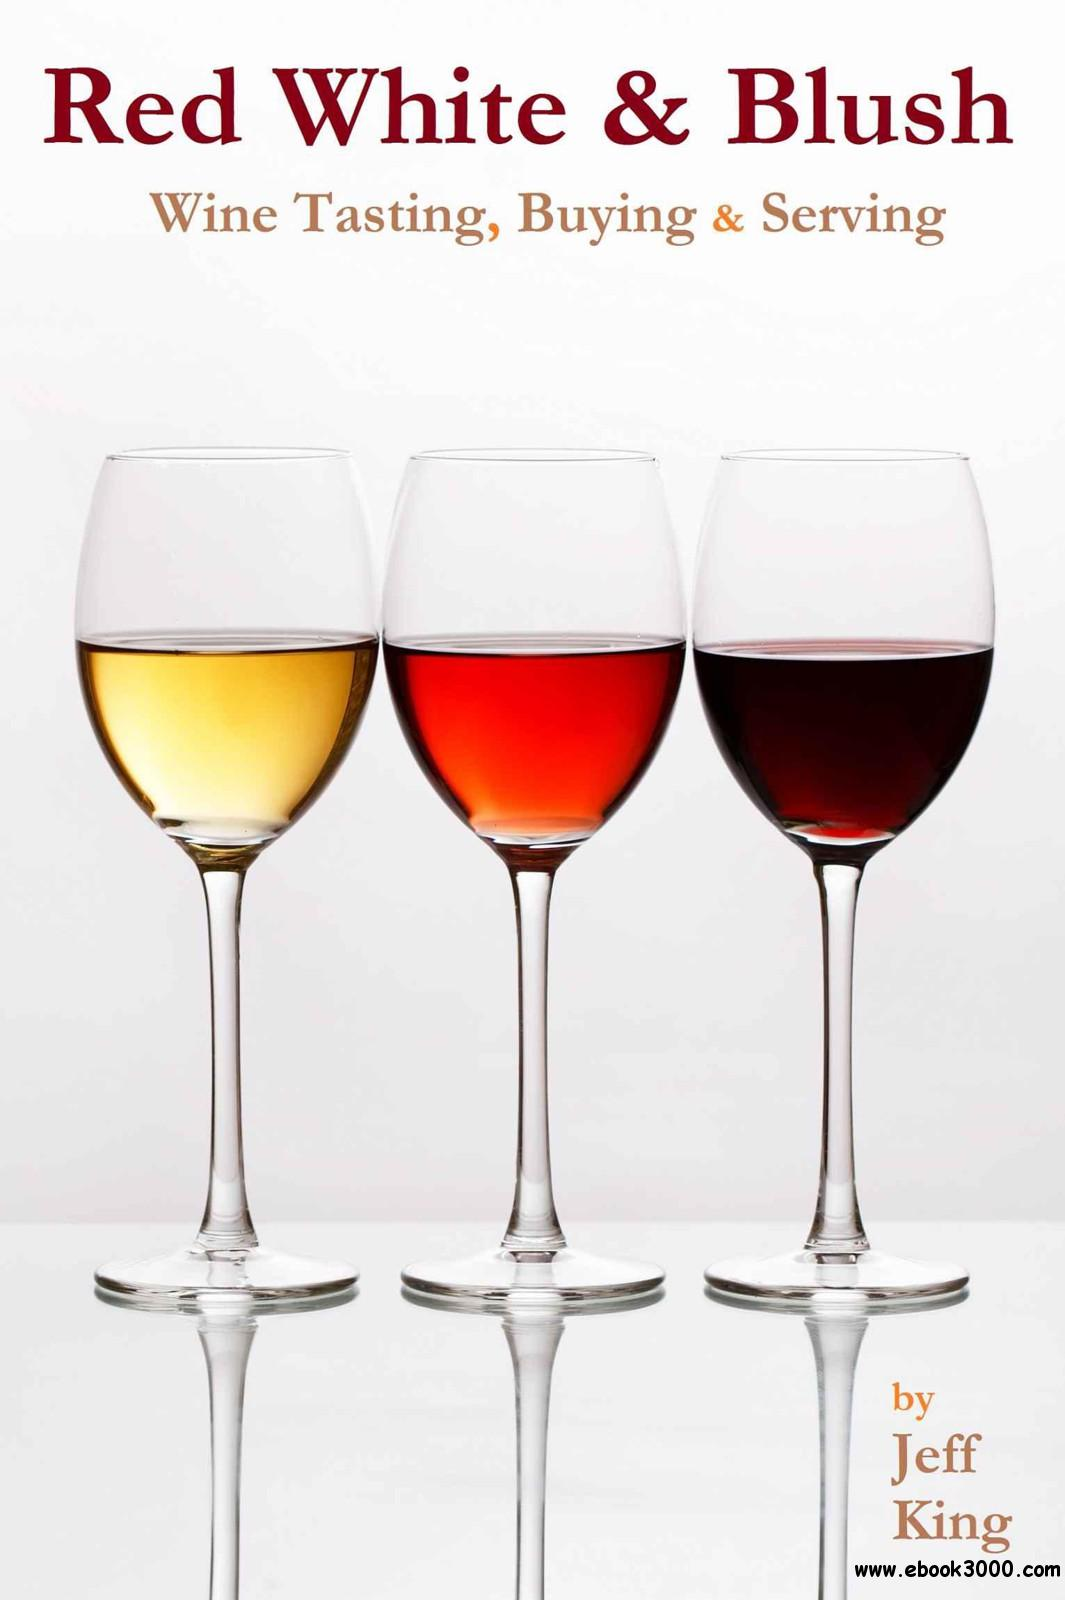 Red White & Blush: Wine Tasting, Buying & Serving free download